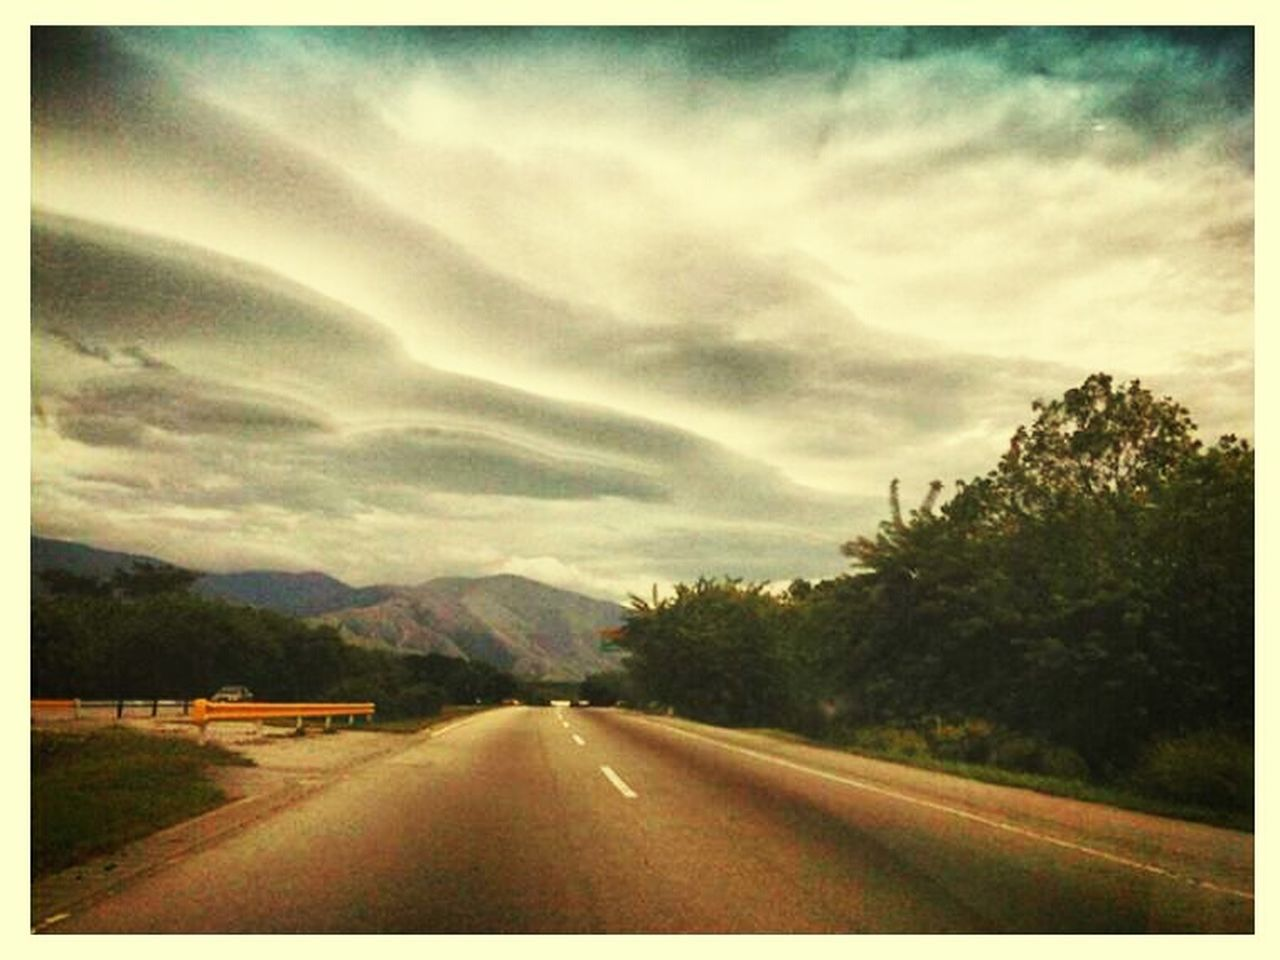 road, the way forward, transportation, scenics, tree, landscape, highway, nature, journey, no people, dividing line, tranquility, tranquil scene, sky, cloud - sky, outdoors, day, beauty in nature